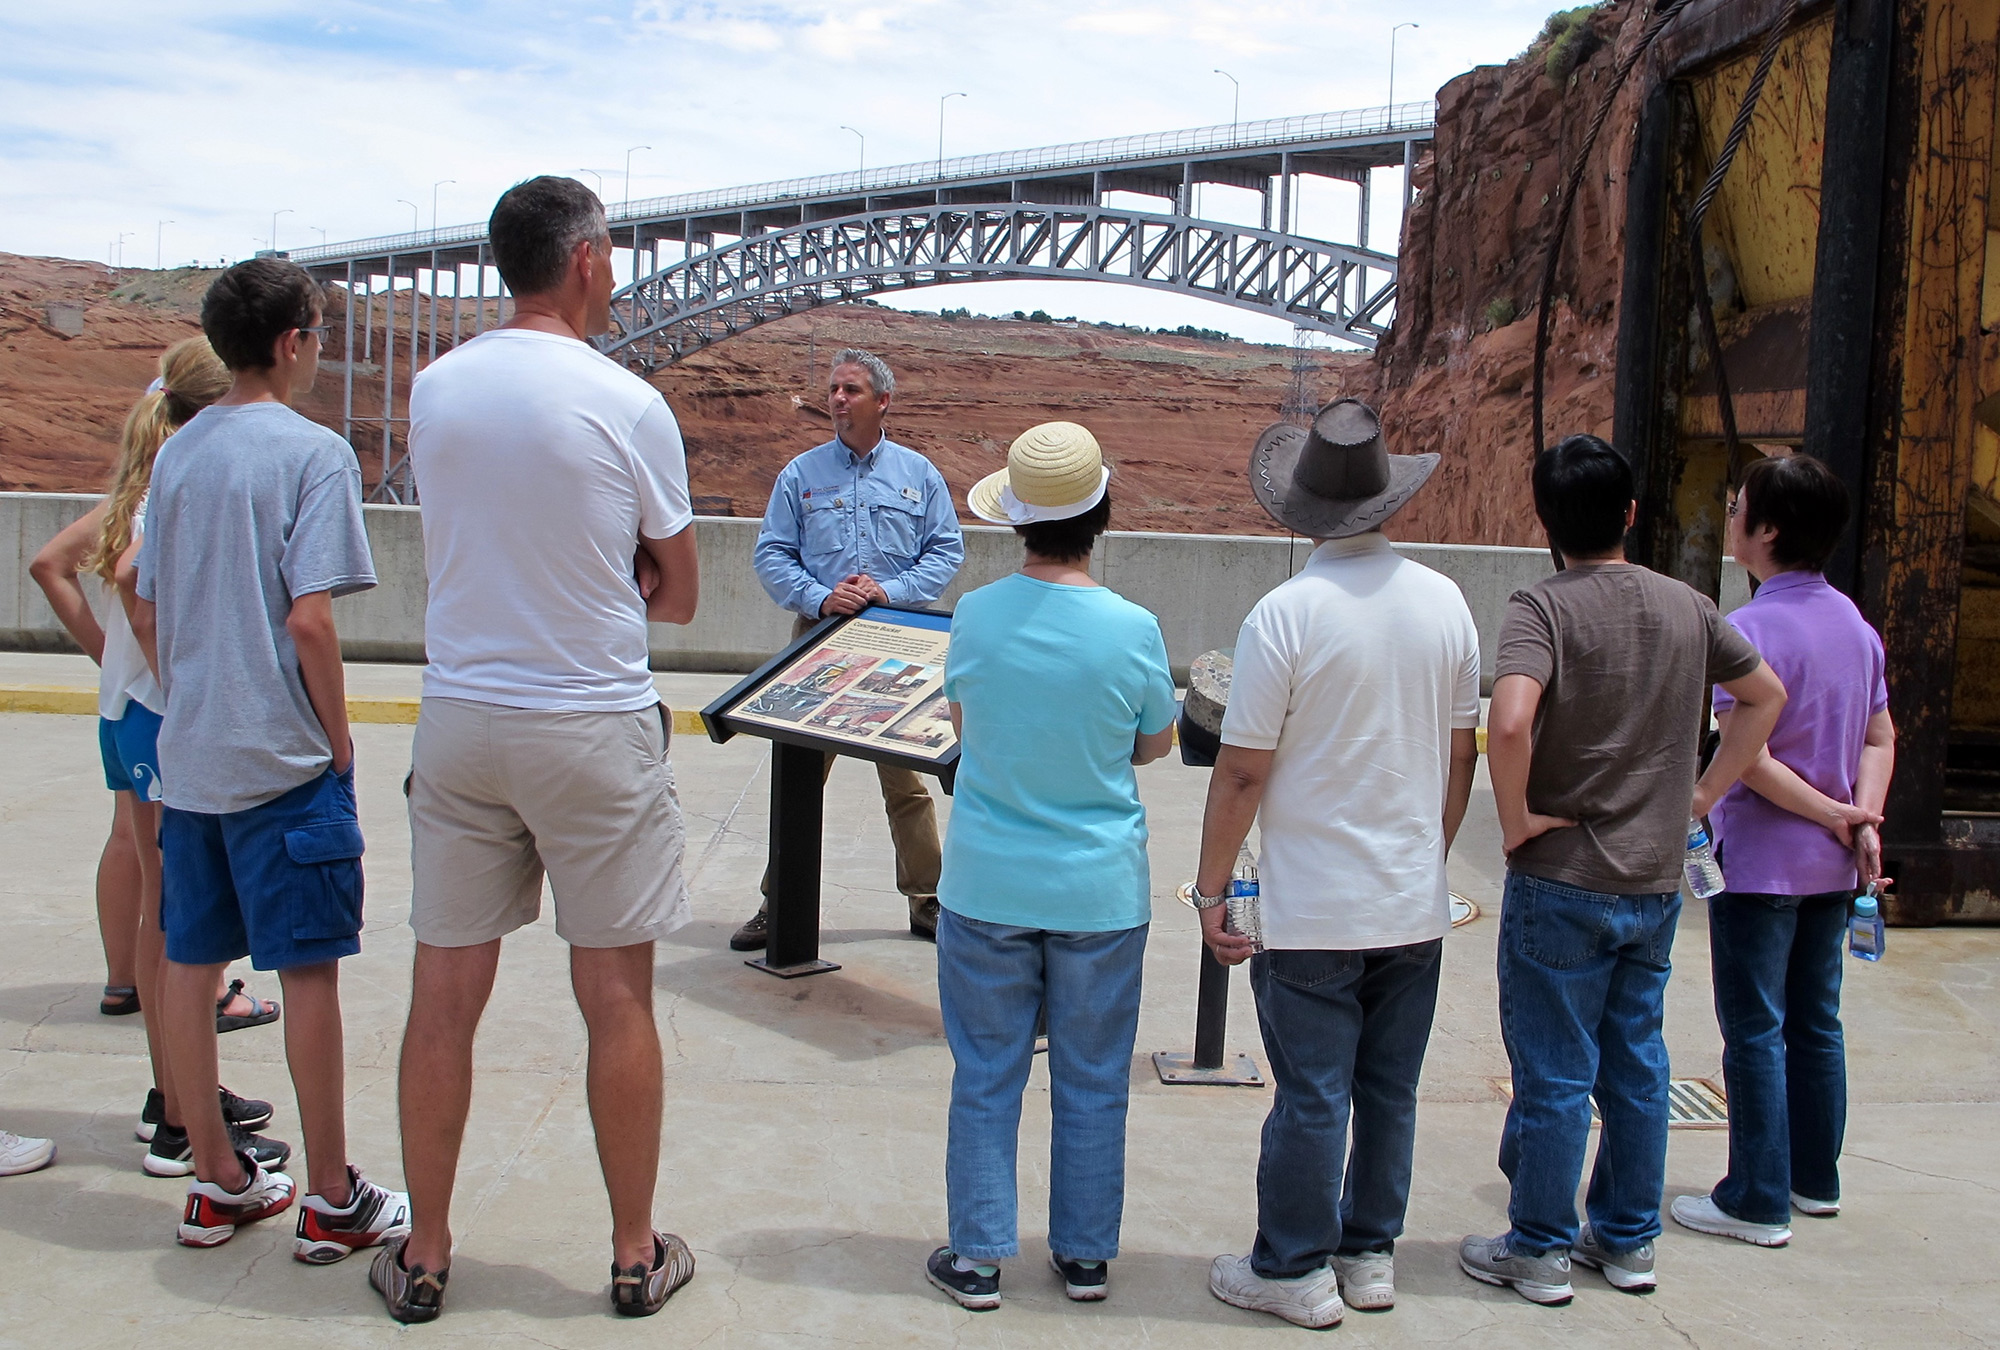 A tour group stands at Glen Canyon Dam, the head of Lake Powell. The dam and the lake it created are at the center of a $250 million dollar tourism industry in Page, Arizona. (Photo by Charlotte Weiner/GroundTruth)